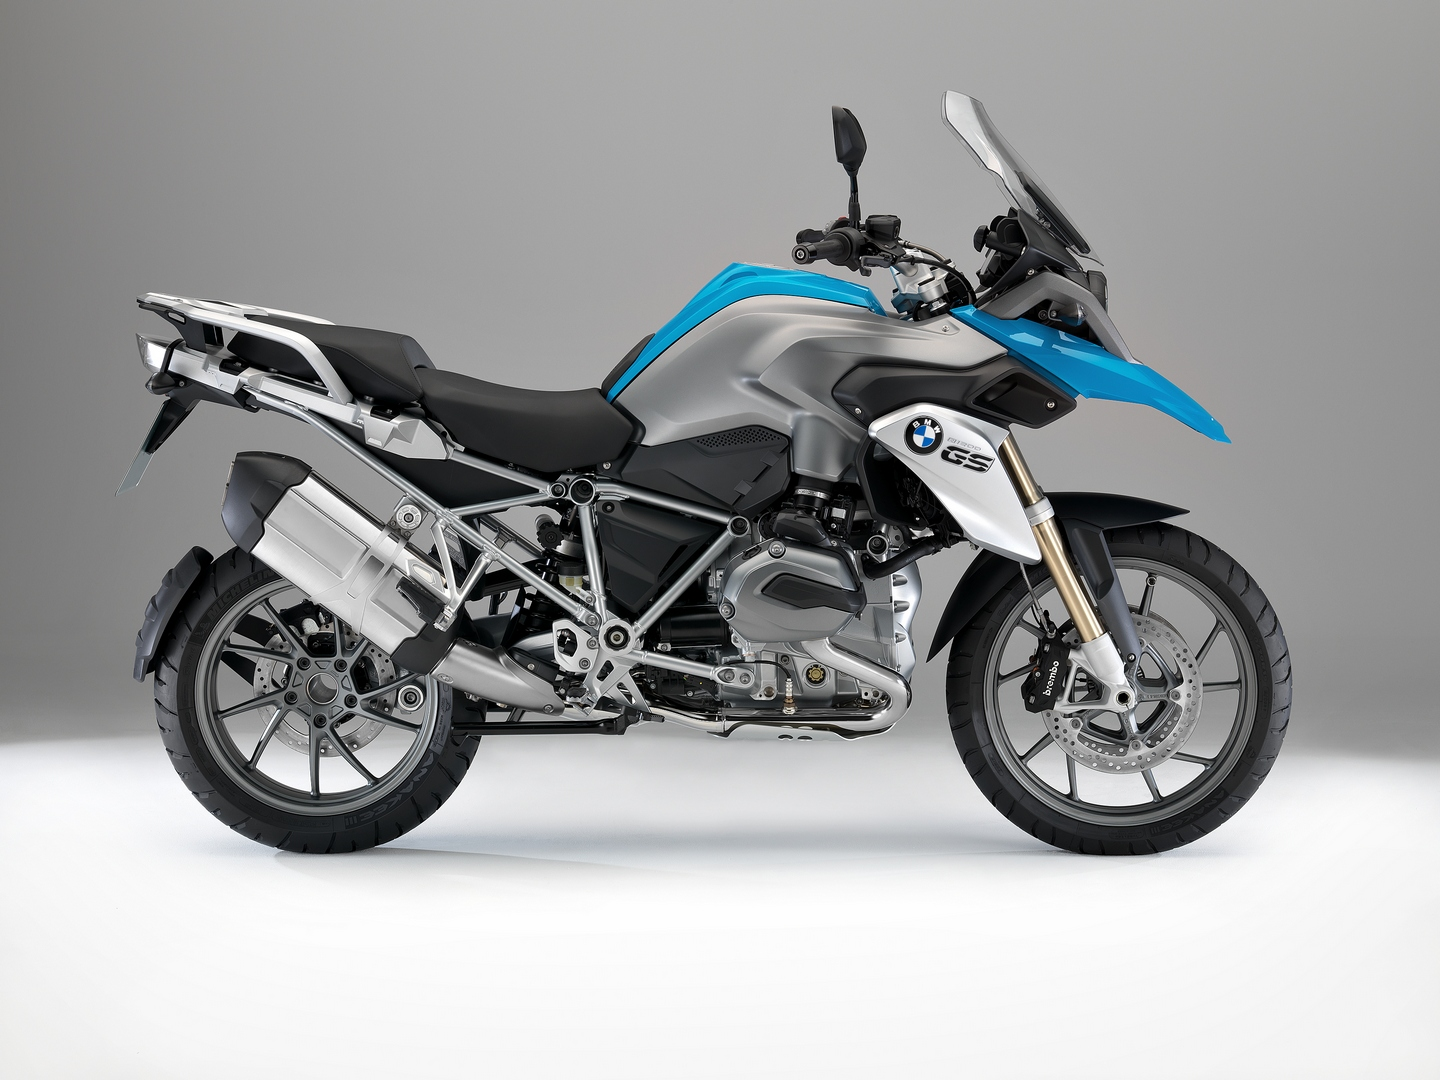 the-liquid-cooled-bmw-r1200gs-receives-good-design-award-75143_1.jpg